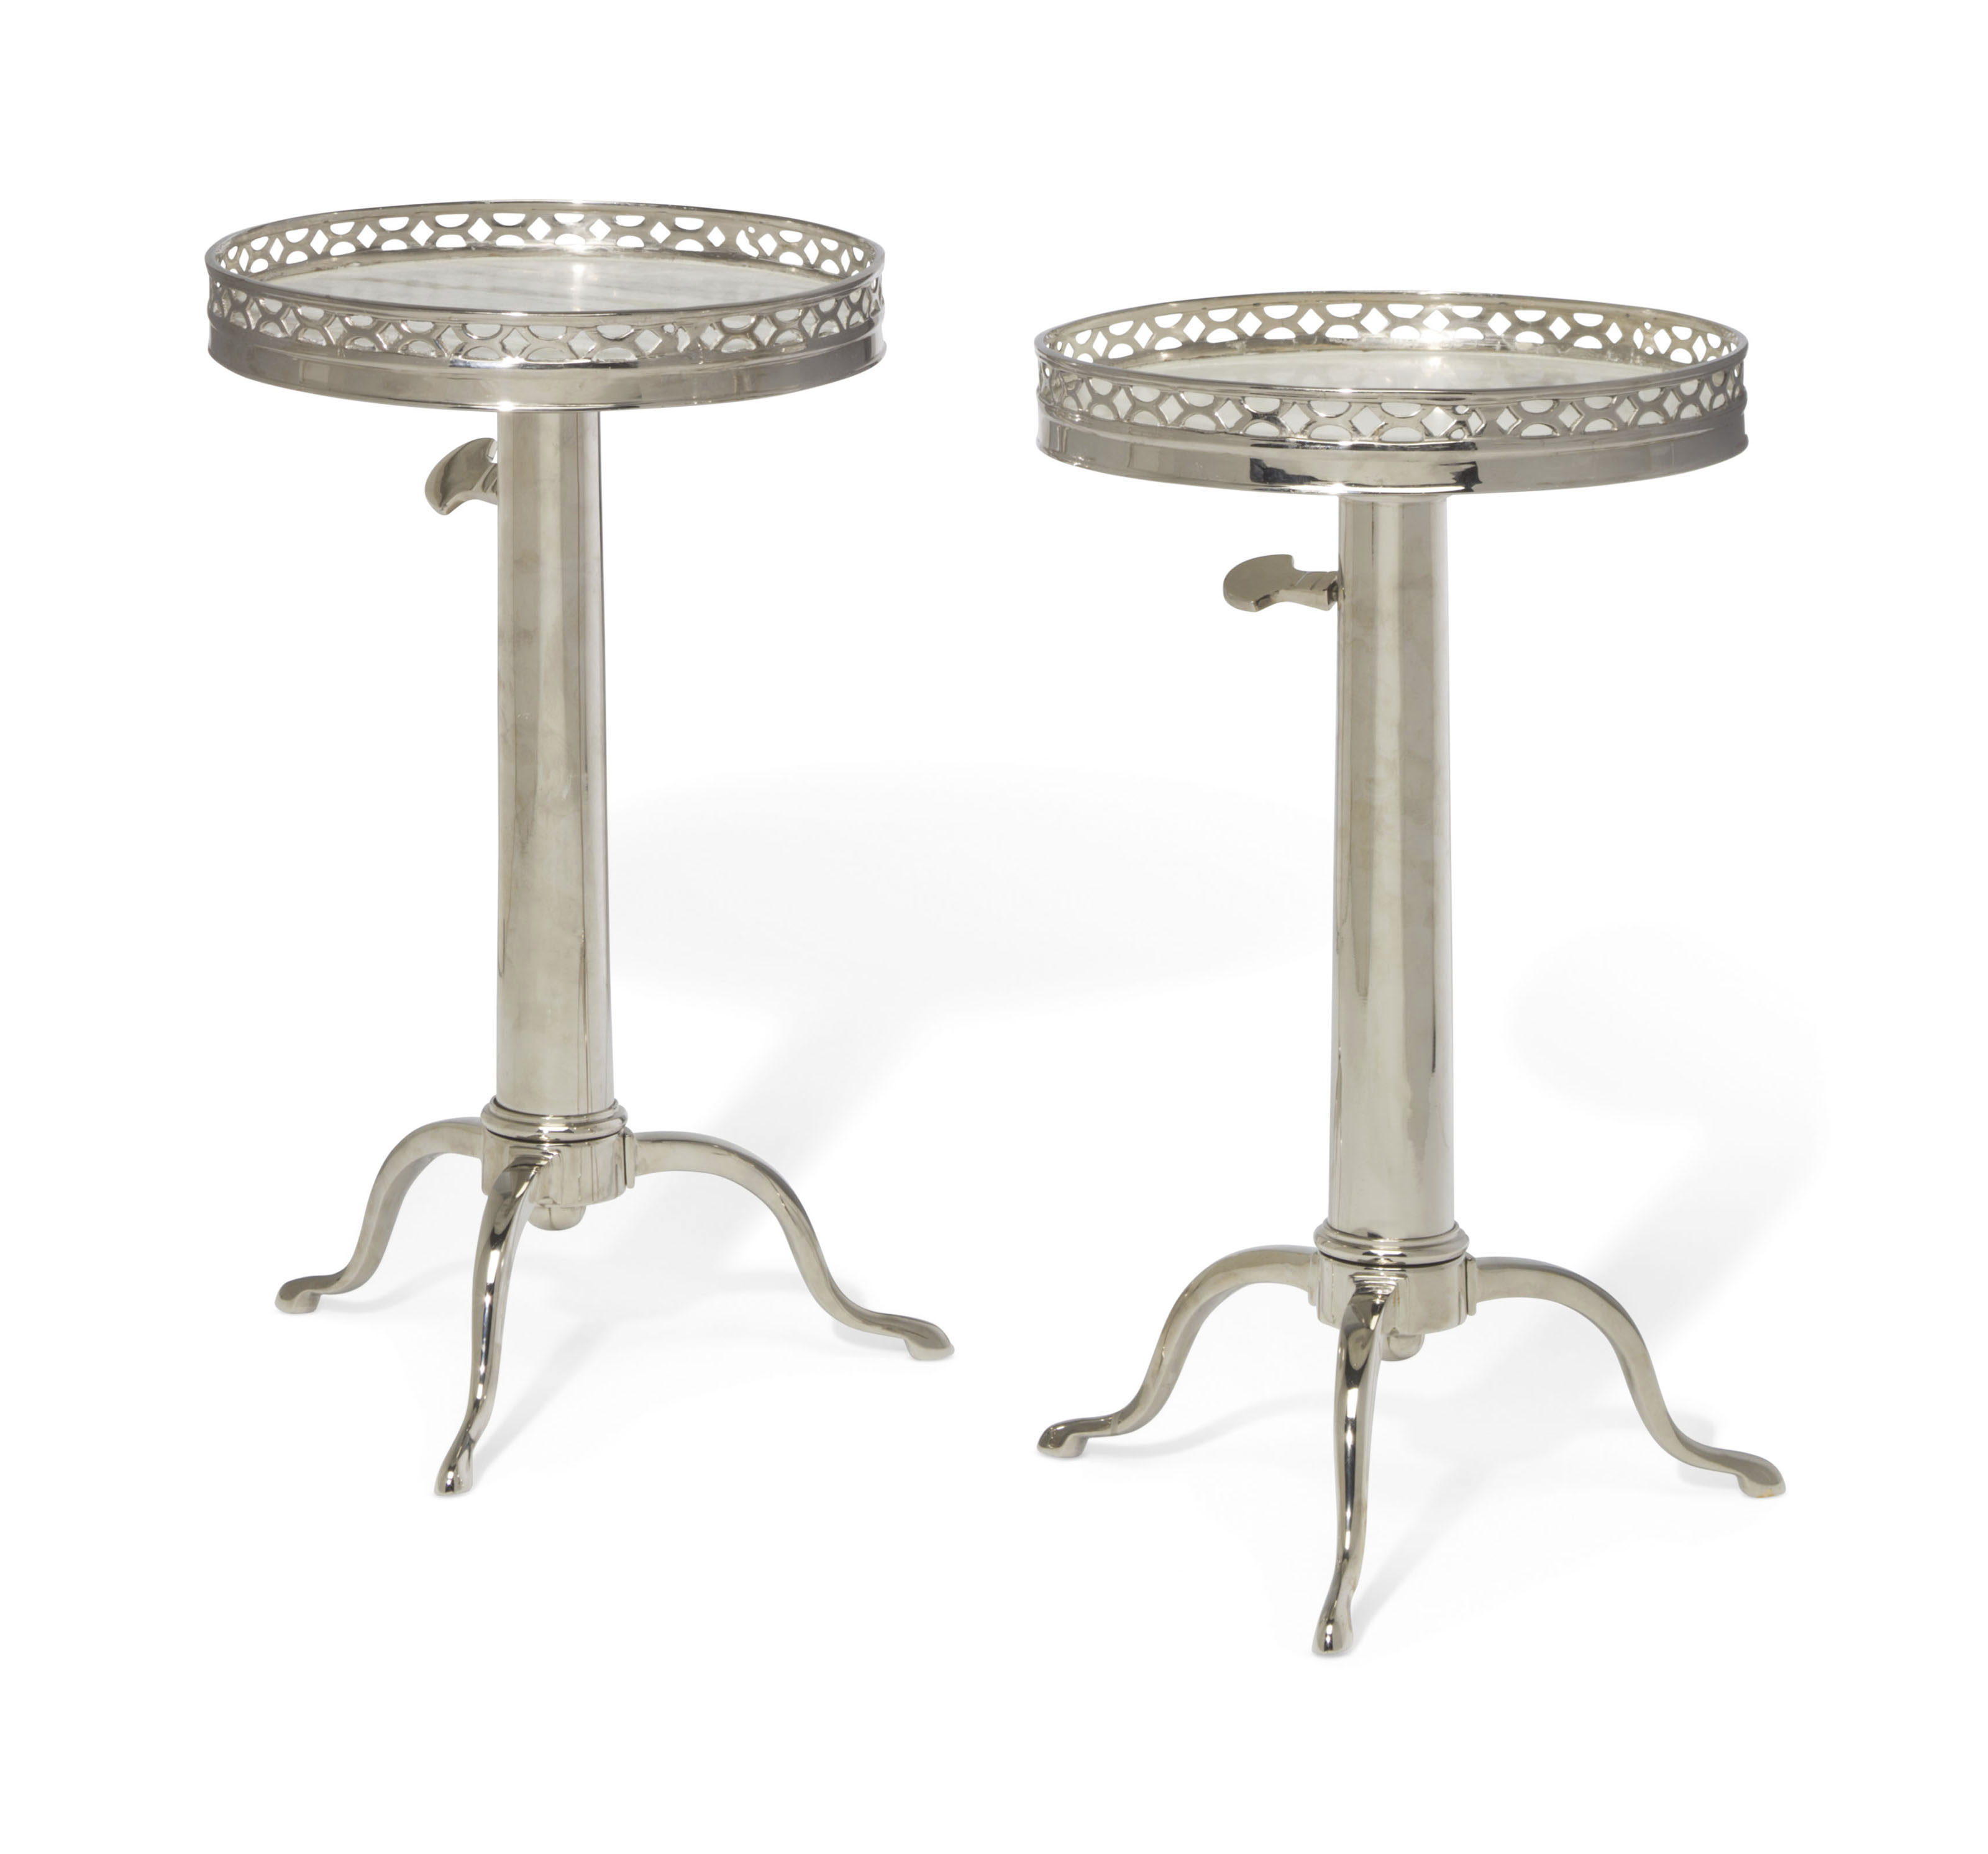 A PAIR OF FRENCH SILVERED-METAL TELESCOPING TABLES